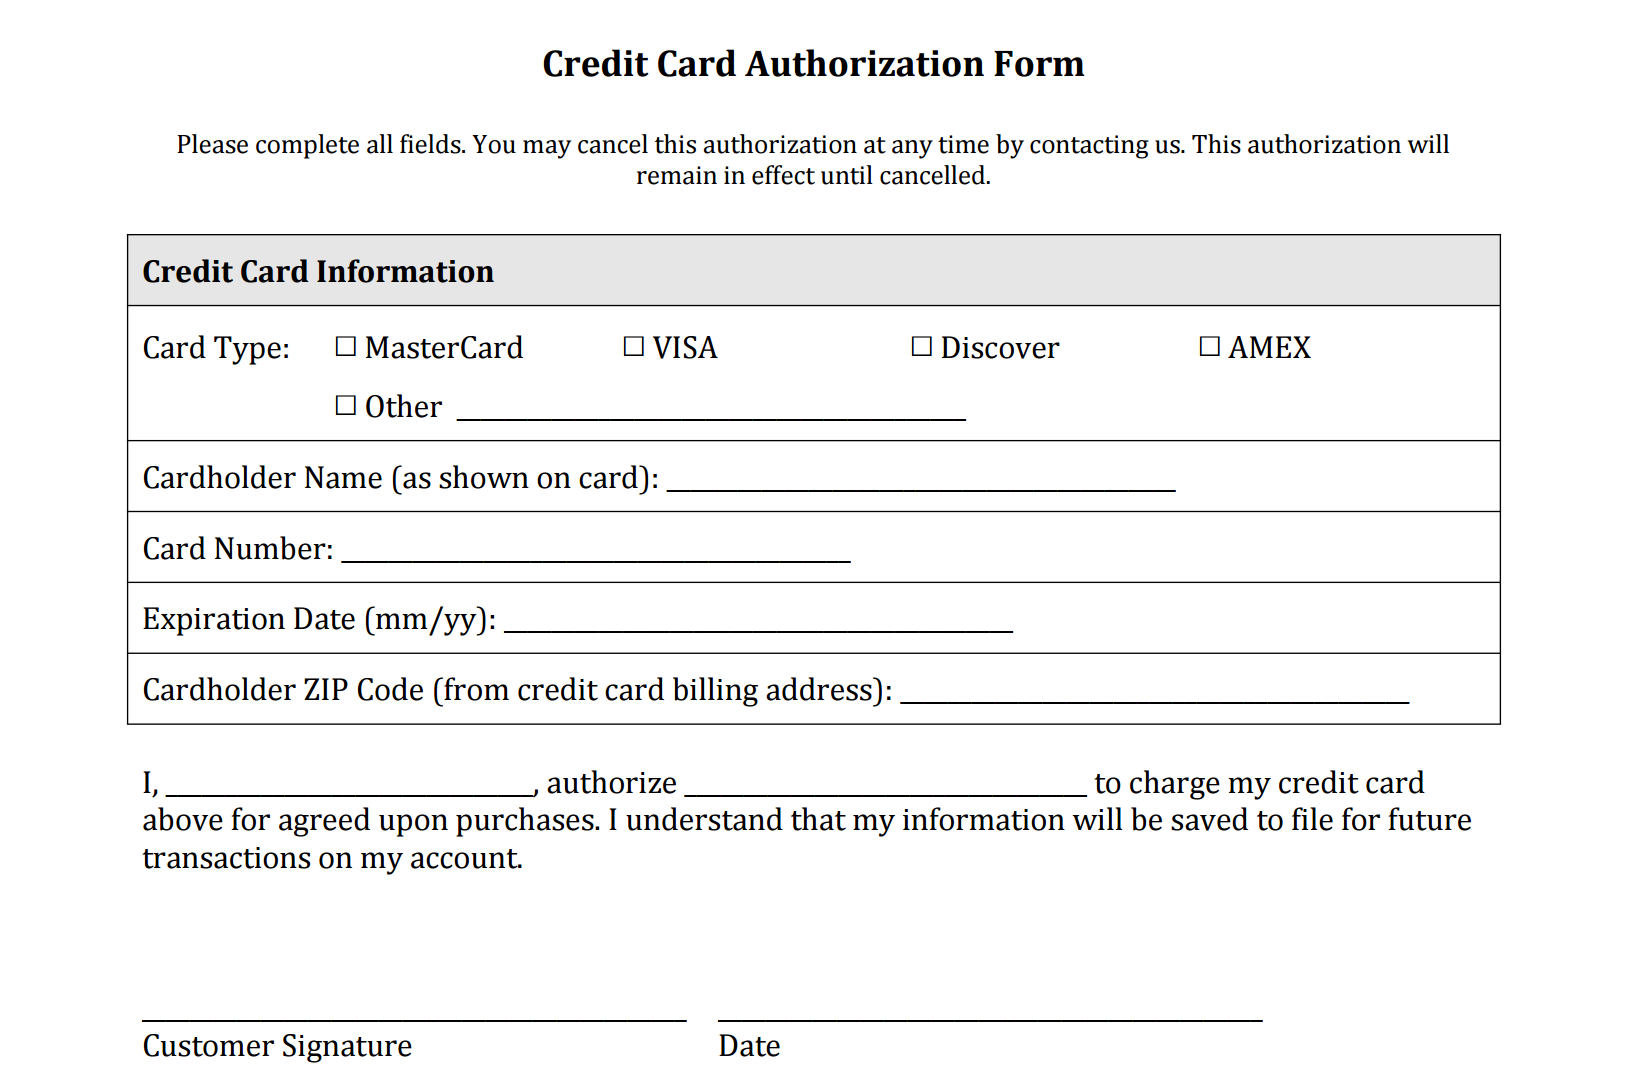 credit-card-authorization-form-1_thumb Sample Dental Collection Letter Templates on patient dismissal, school recommendation, assistant resume cover, medical clearance, patient reactivation, patient referral, assistant reference, program recommendation, insurance appeal,